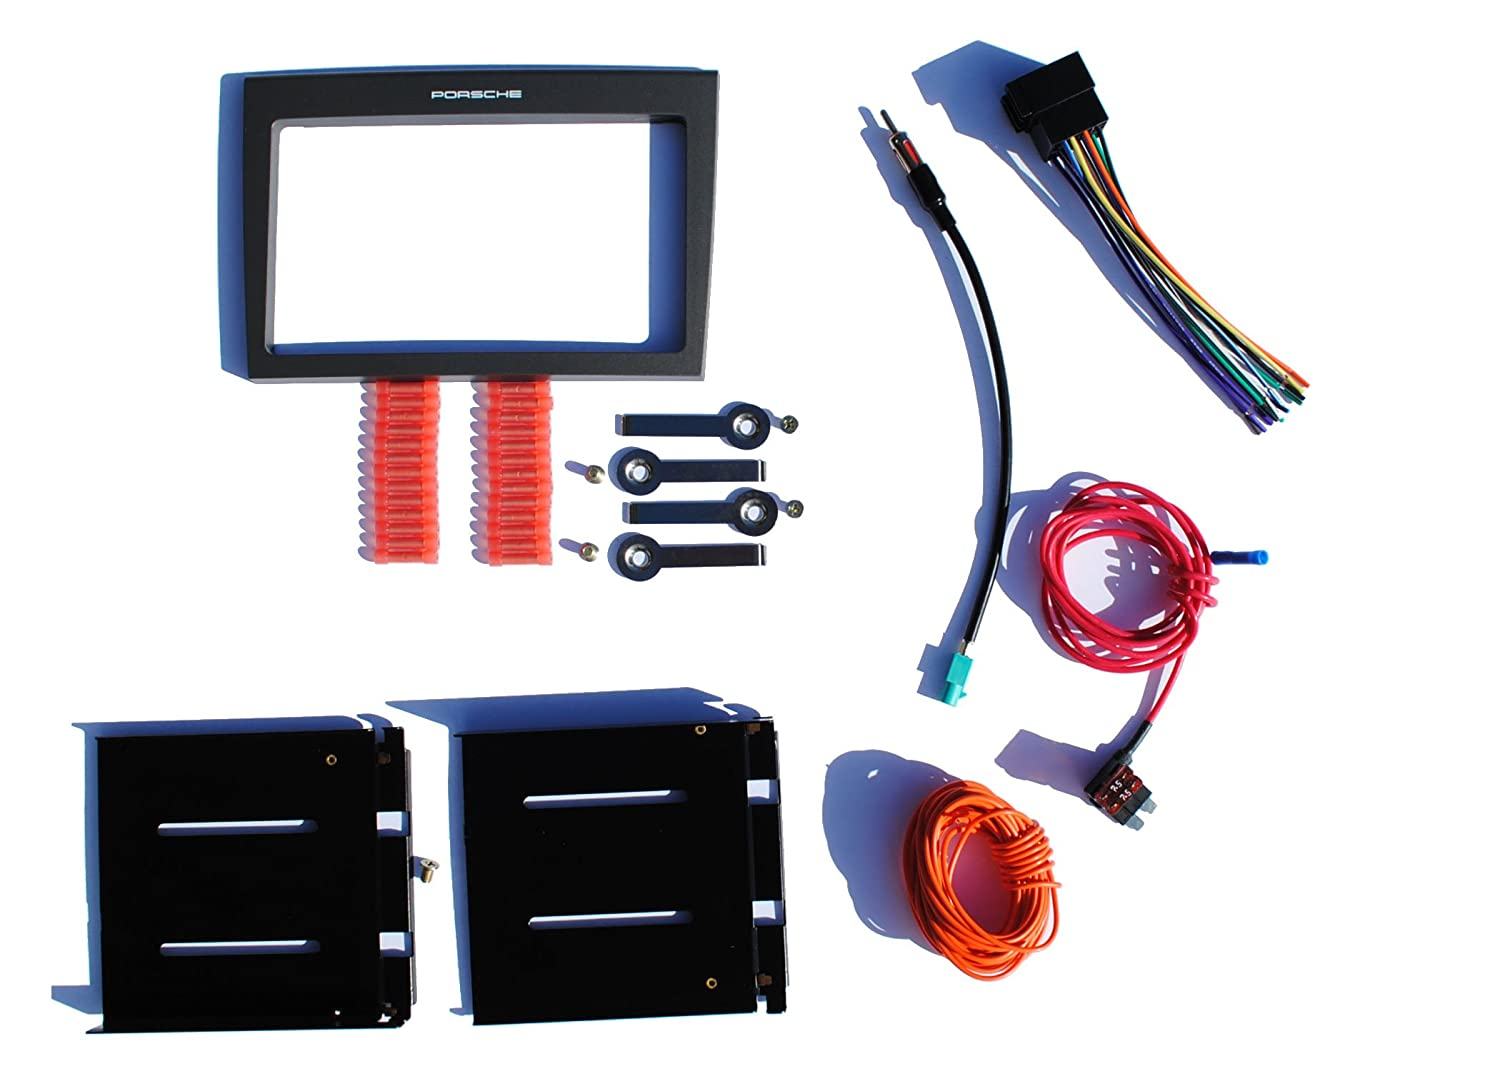 Eclipse Subwoofer Wiring Aftermarket Double Din Radio Stereo Installation Dash Kit Fitted For 2005 2008 Porsche Select 997 987 Models W Standard Audio System Sound